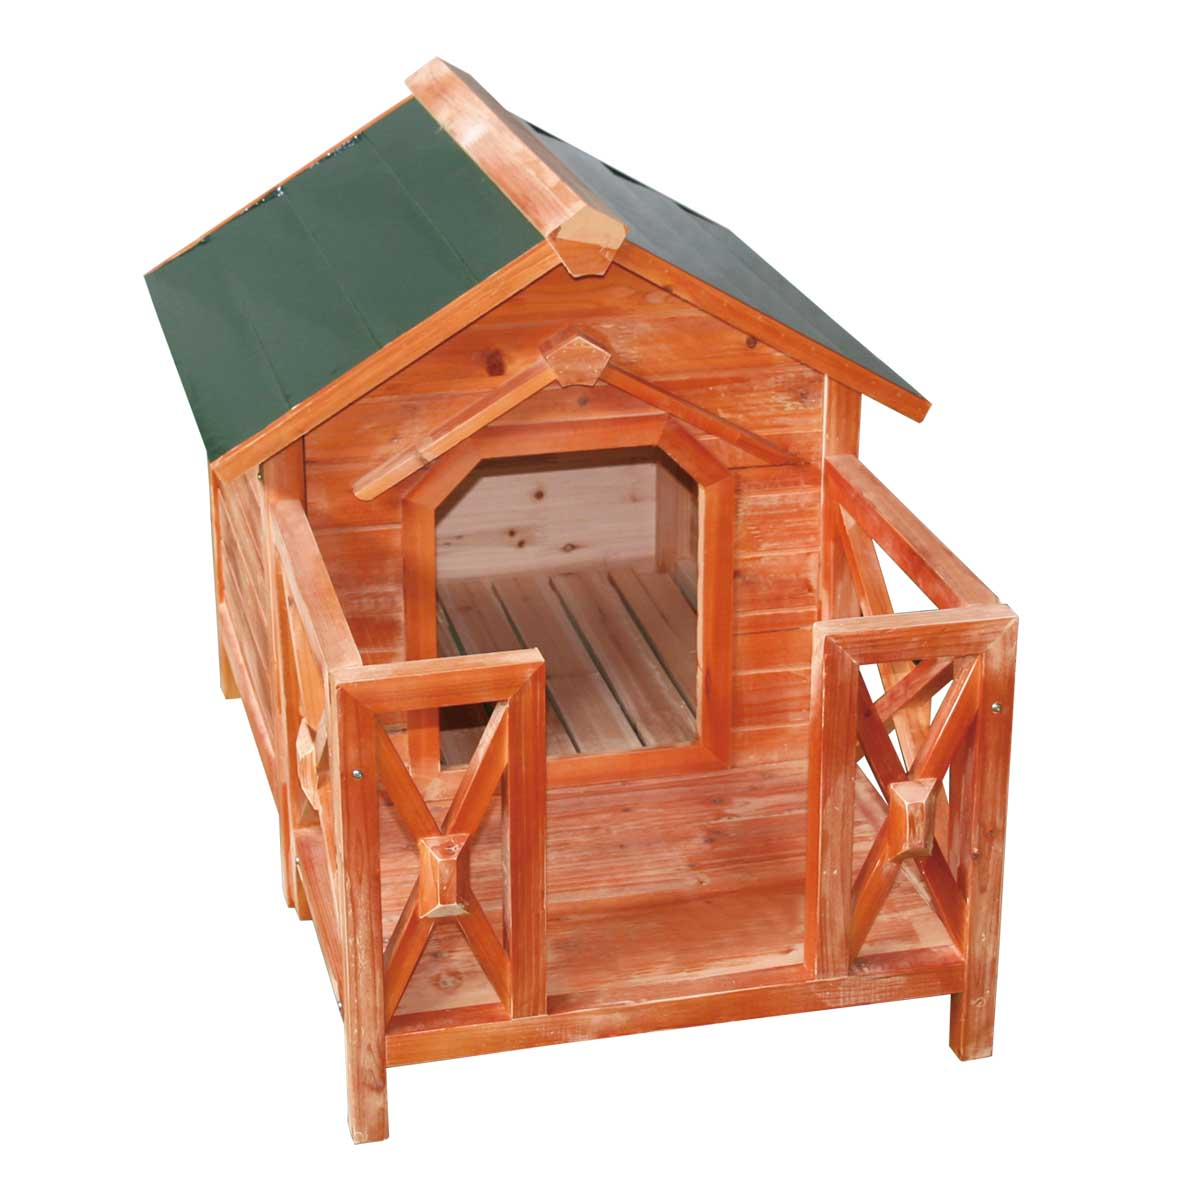 Wooden Dog House Outdoor Wooden Pet Shelter Bed M W Porch